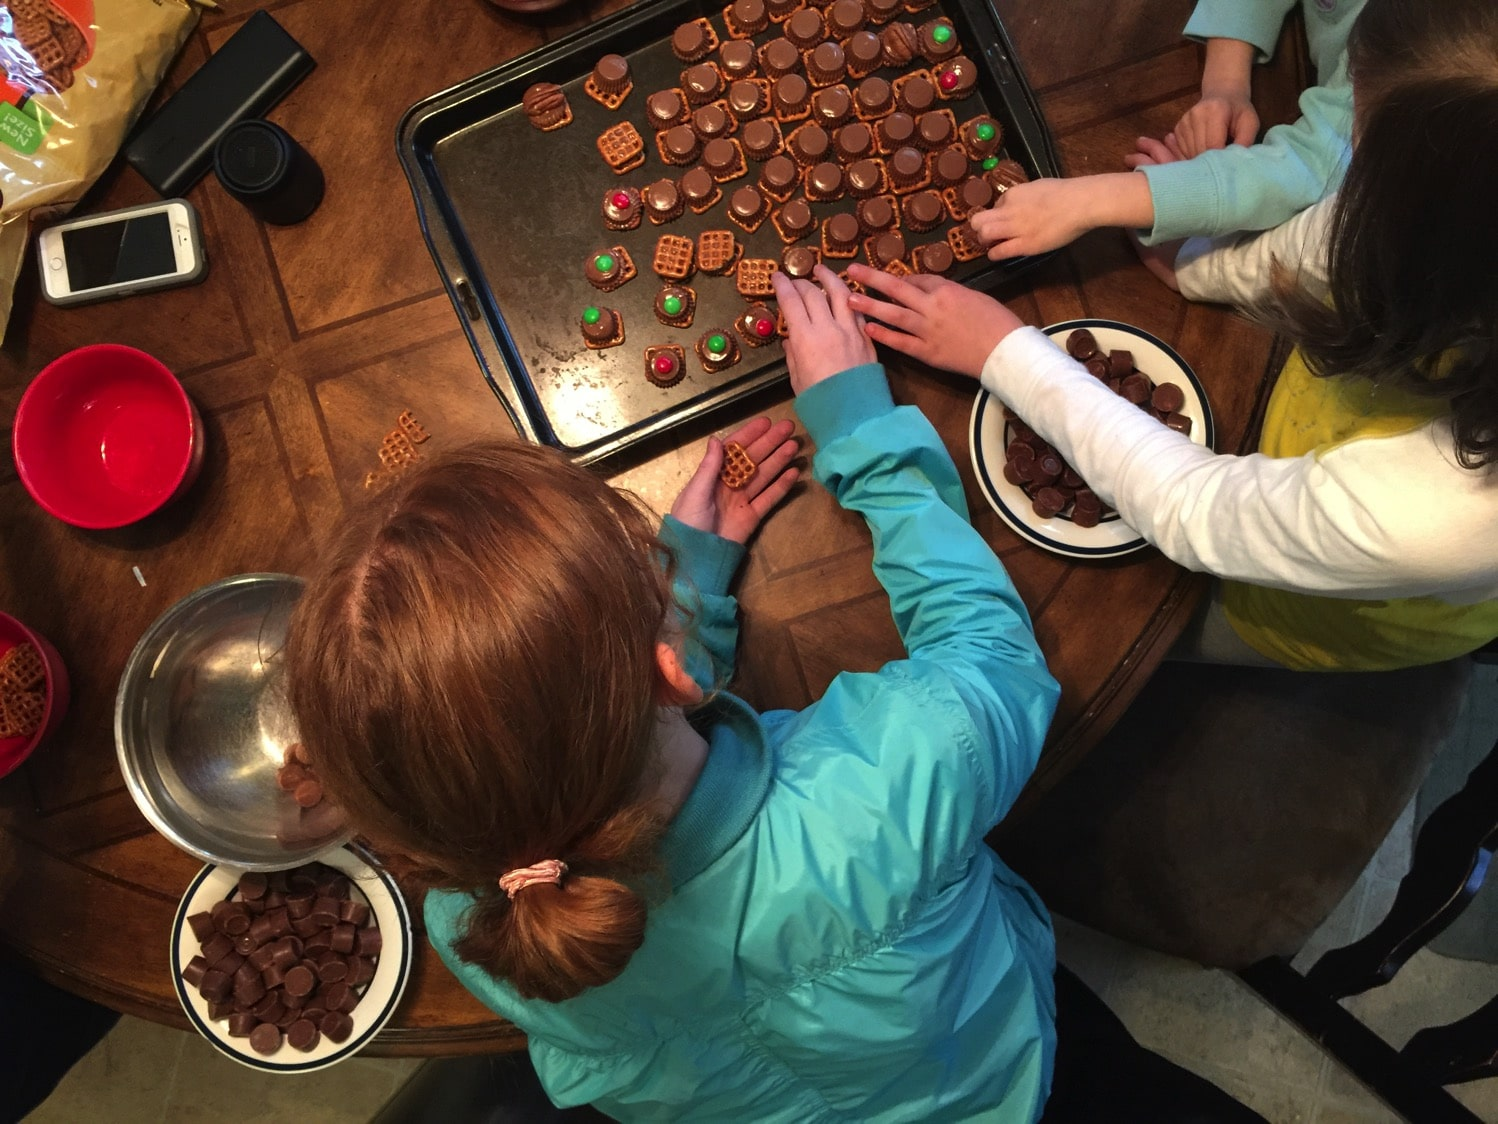 How to have a treat making party with friends